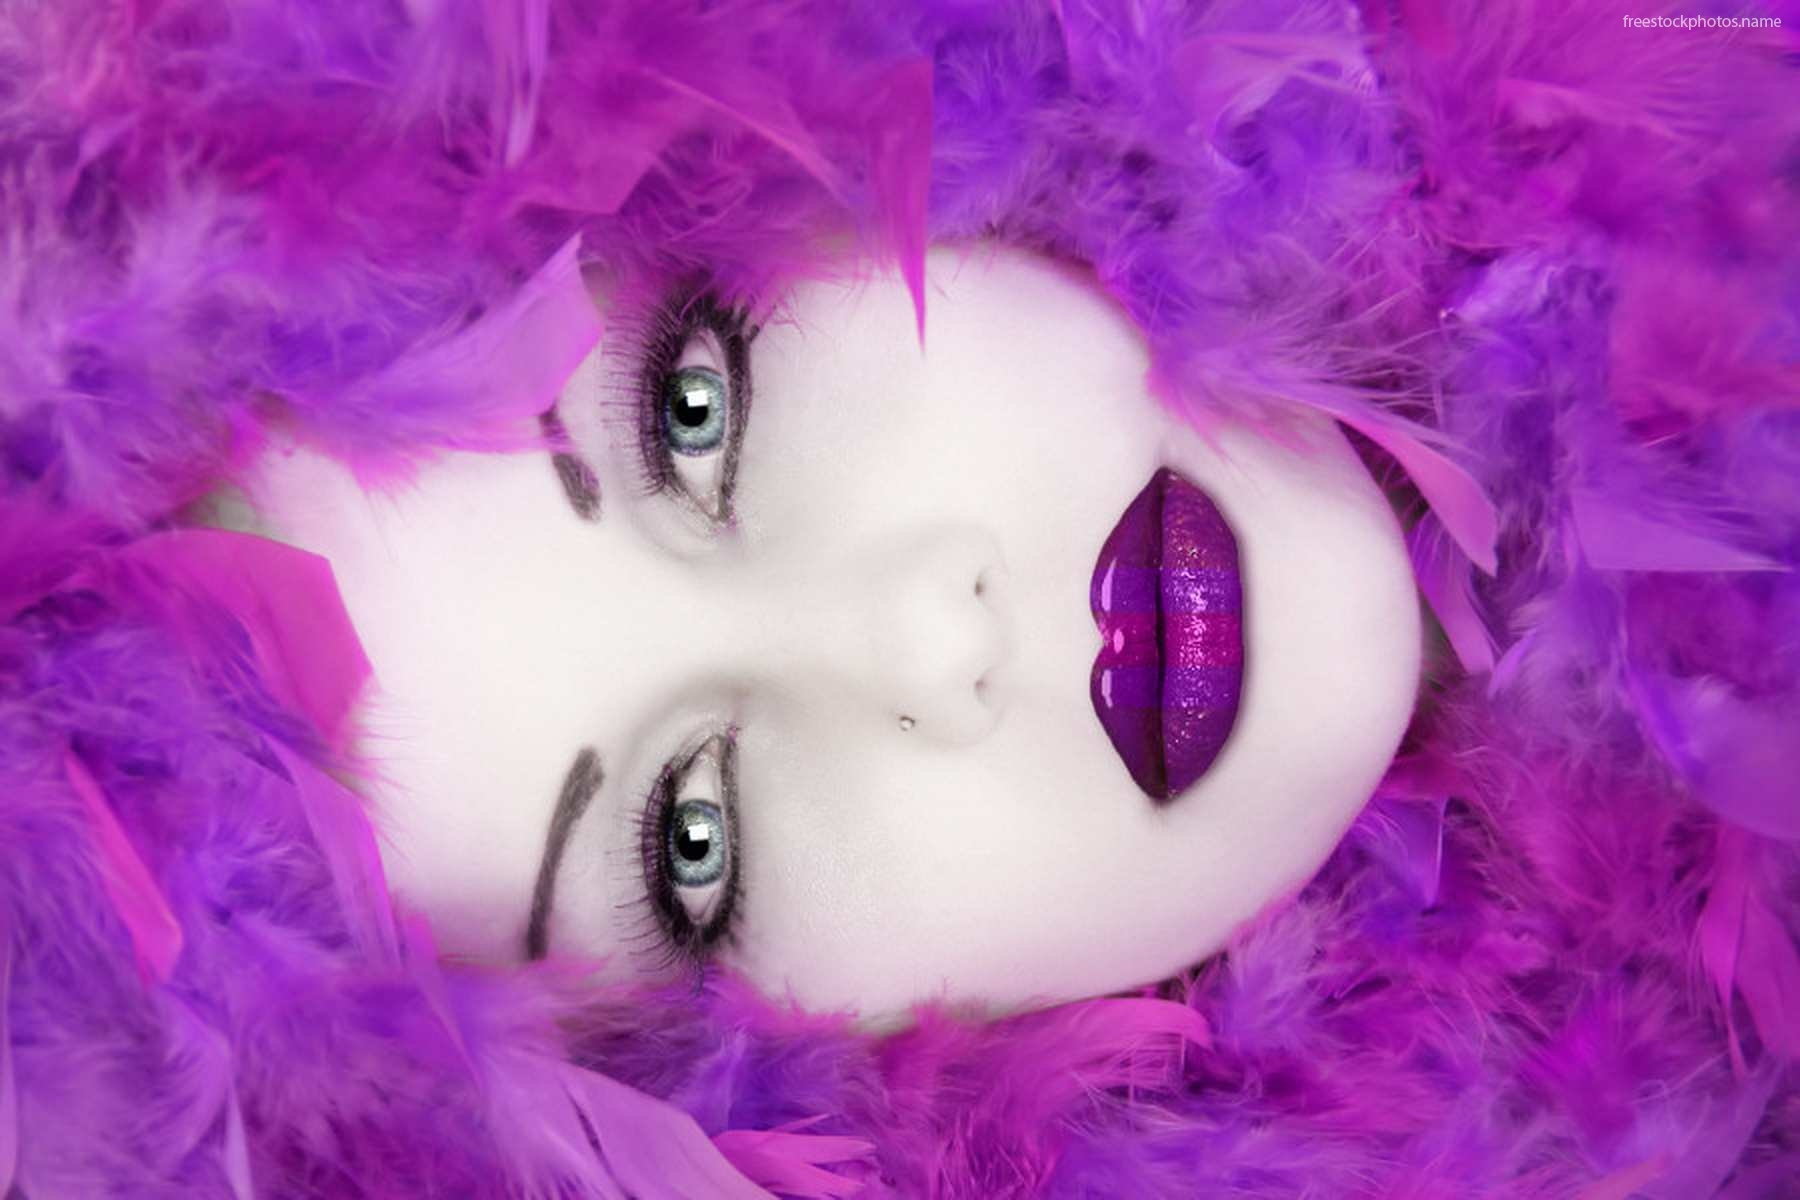 Lovely Lavender Fashion photography